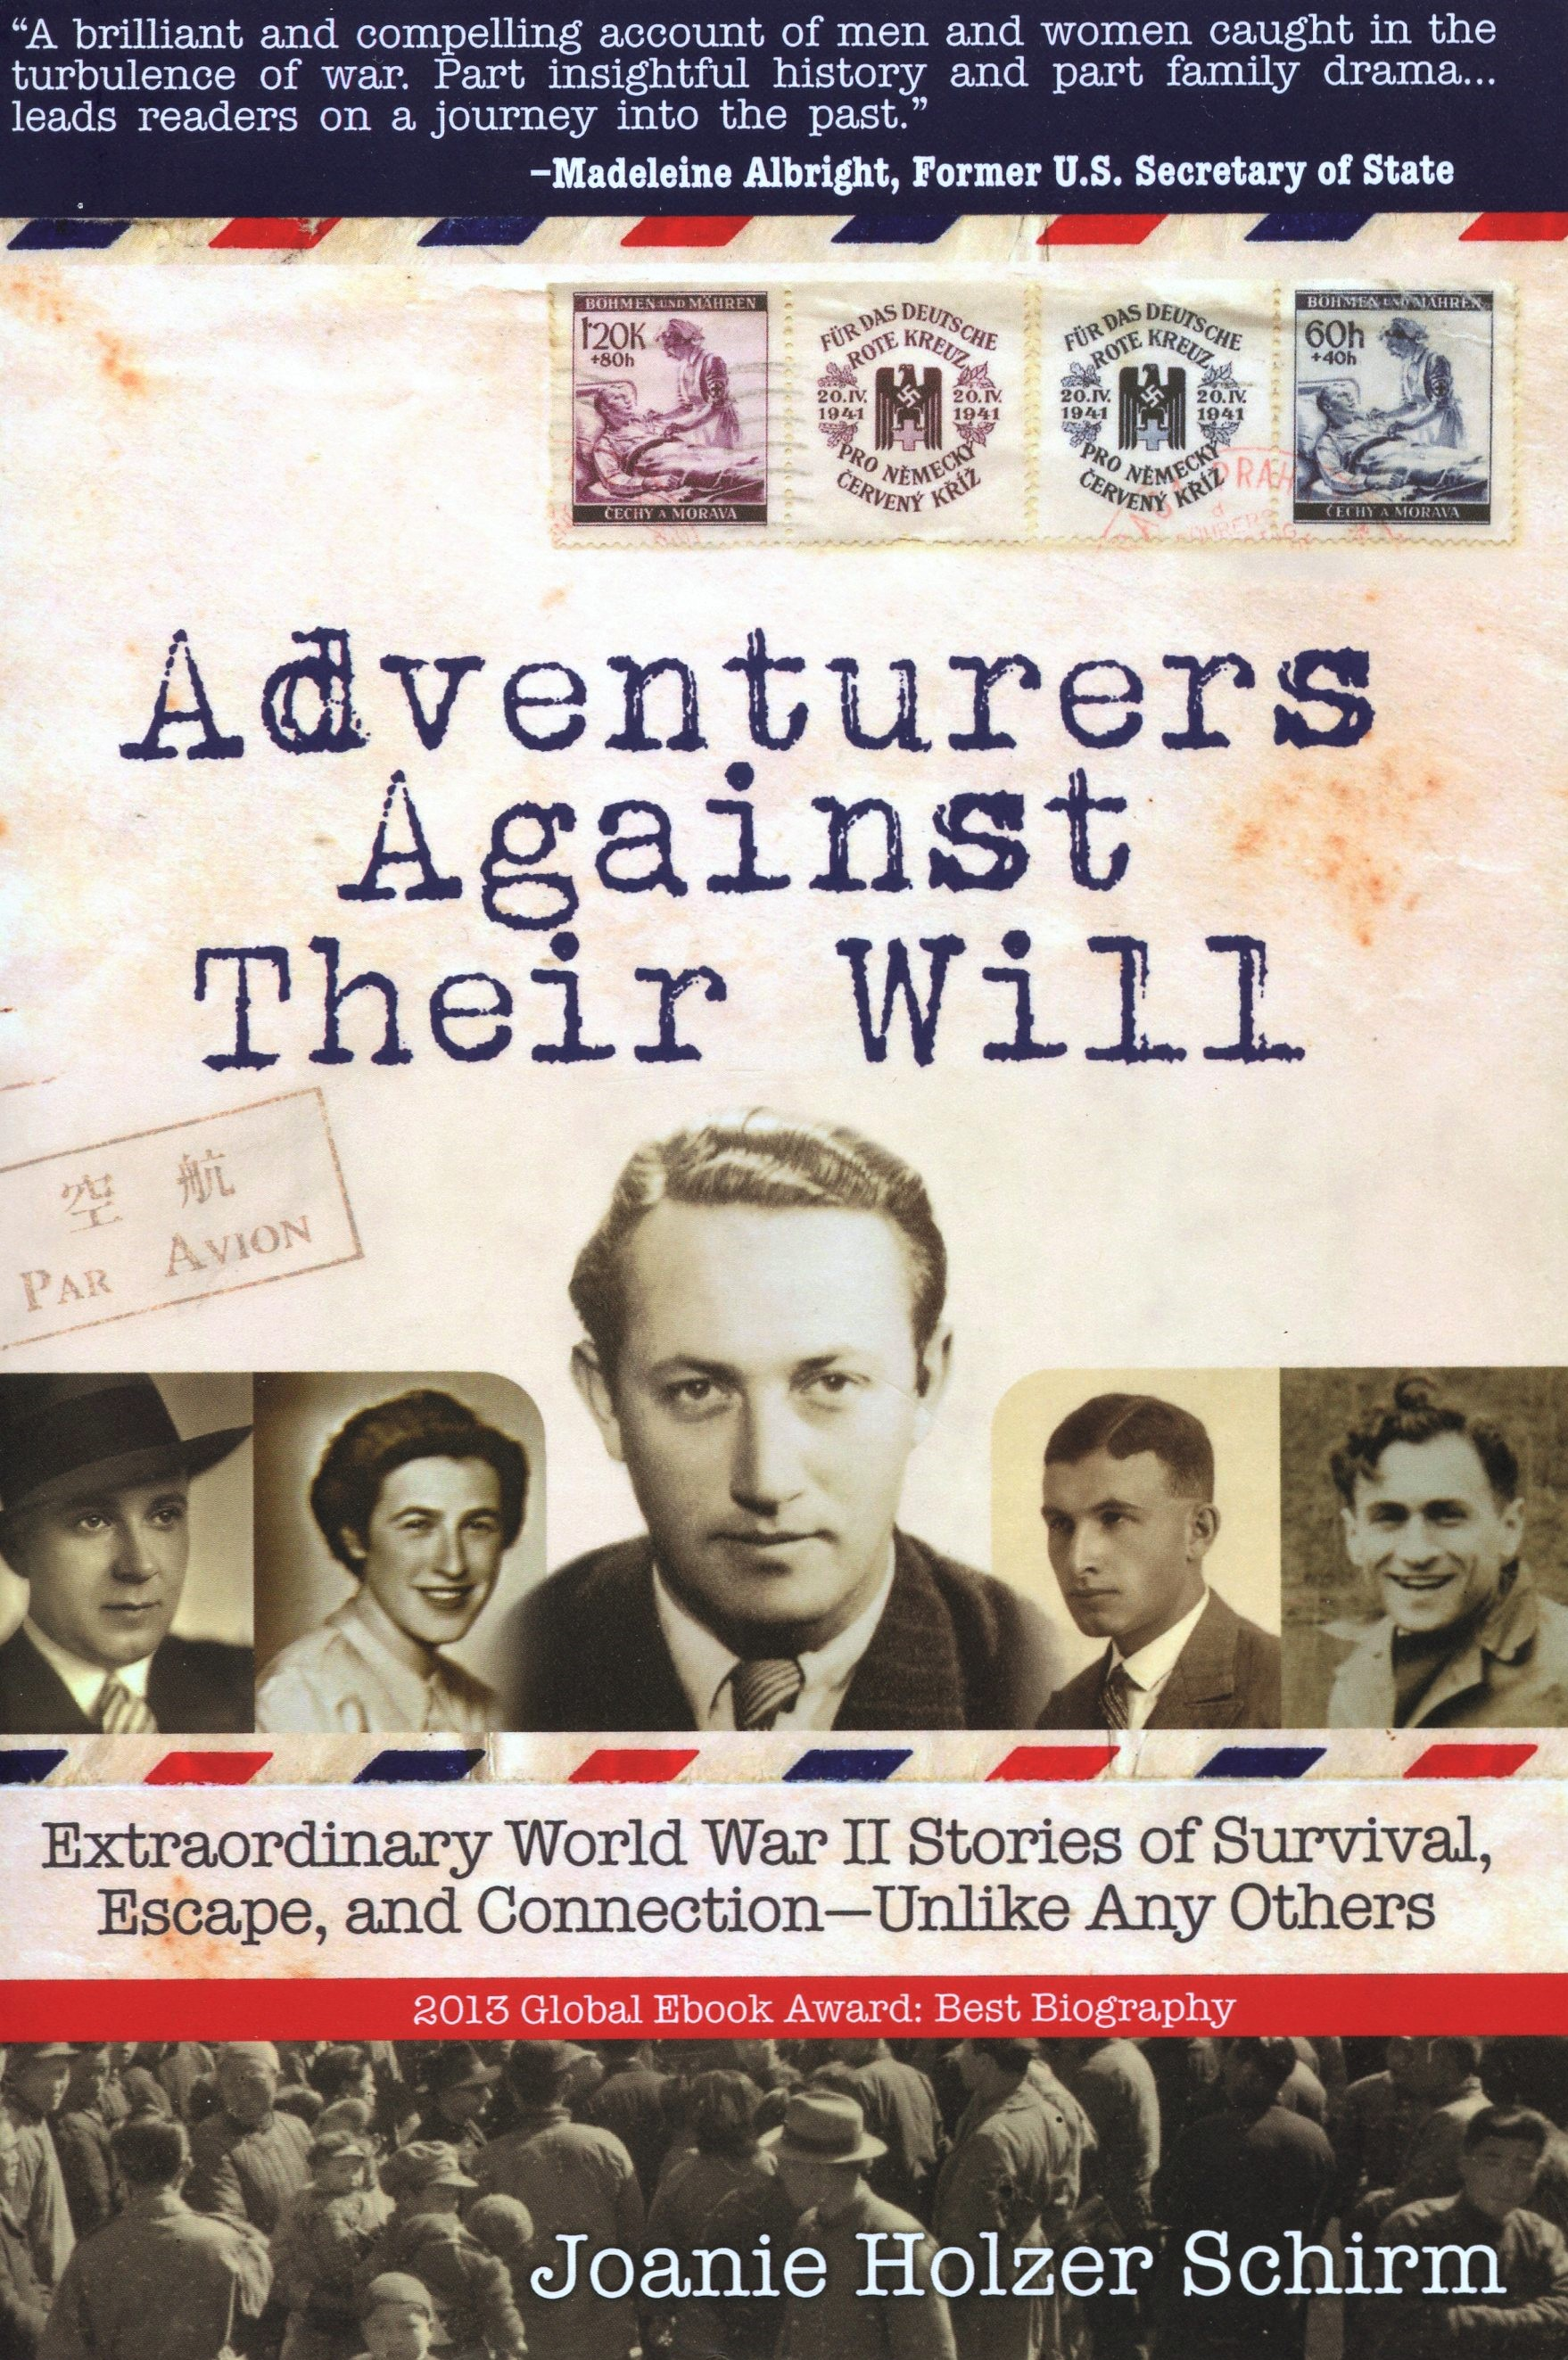 Adventurers Against Their Will: Extraordinary World War II Stories of Survival, Escape, and Connection, Unlike Any Other